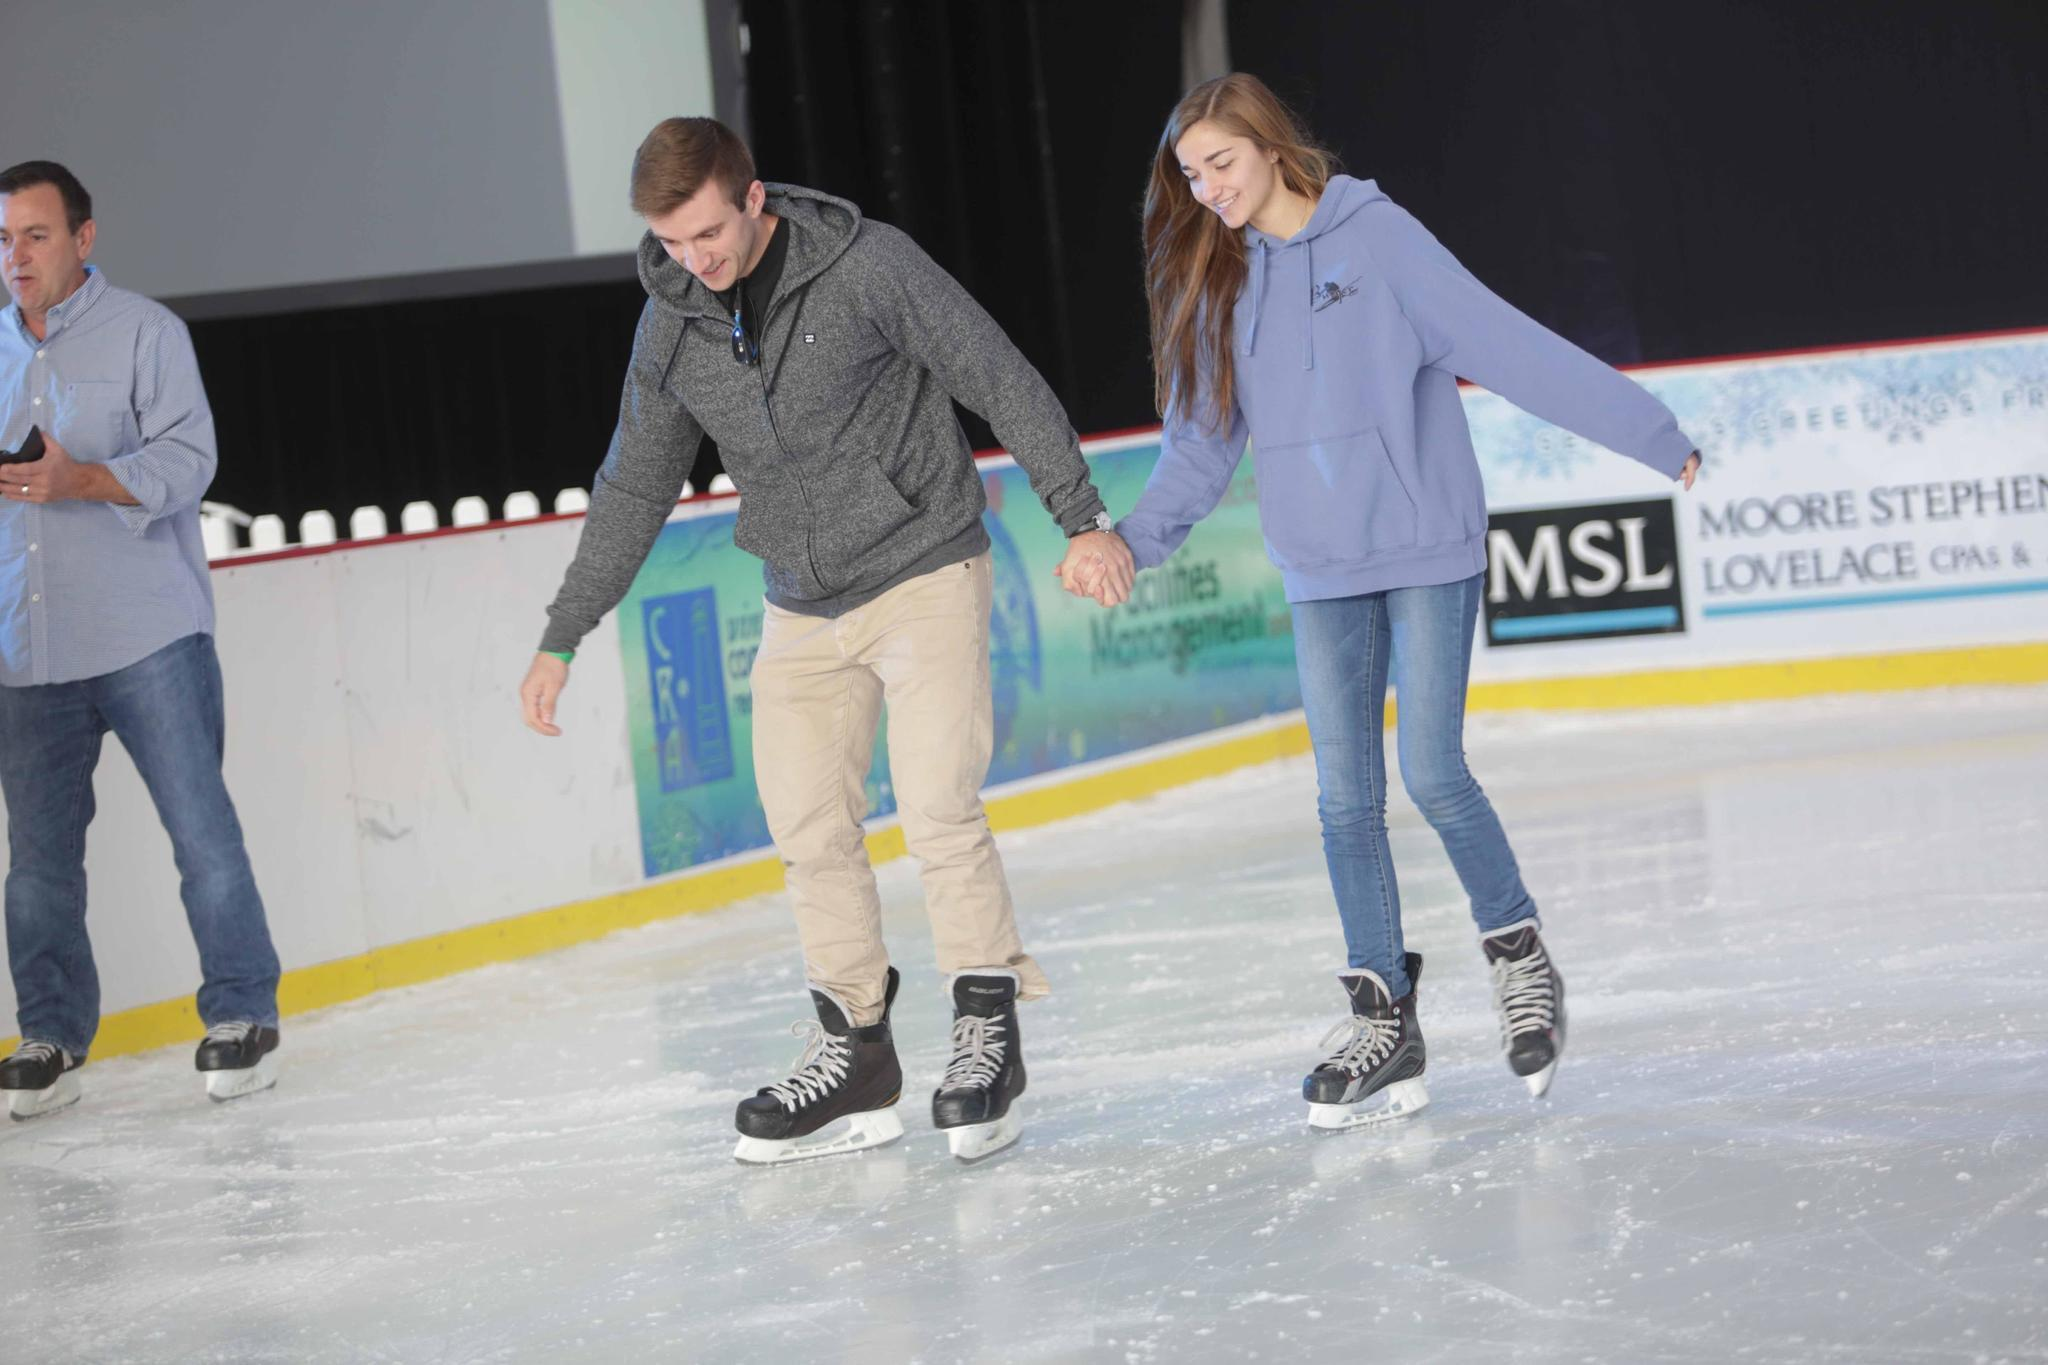 How To Get Ice Off Of Windshield >> Ice rink adds wintry touch to Central Florida - Orlando ...